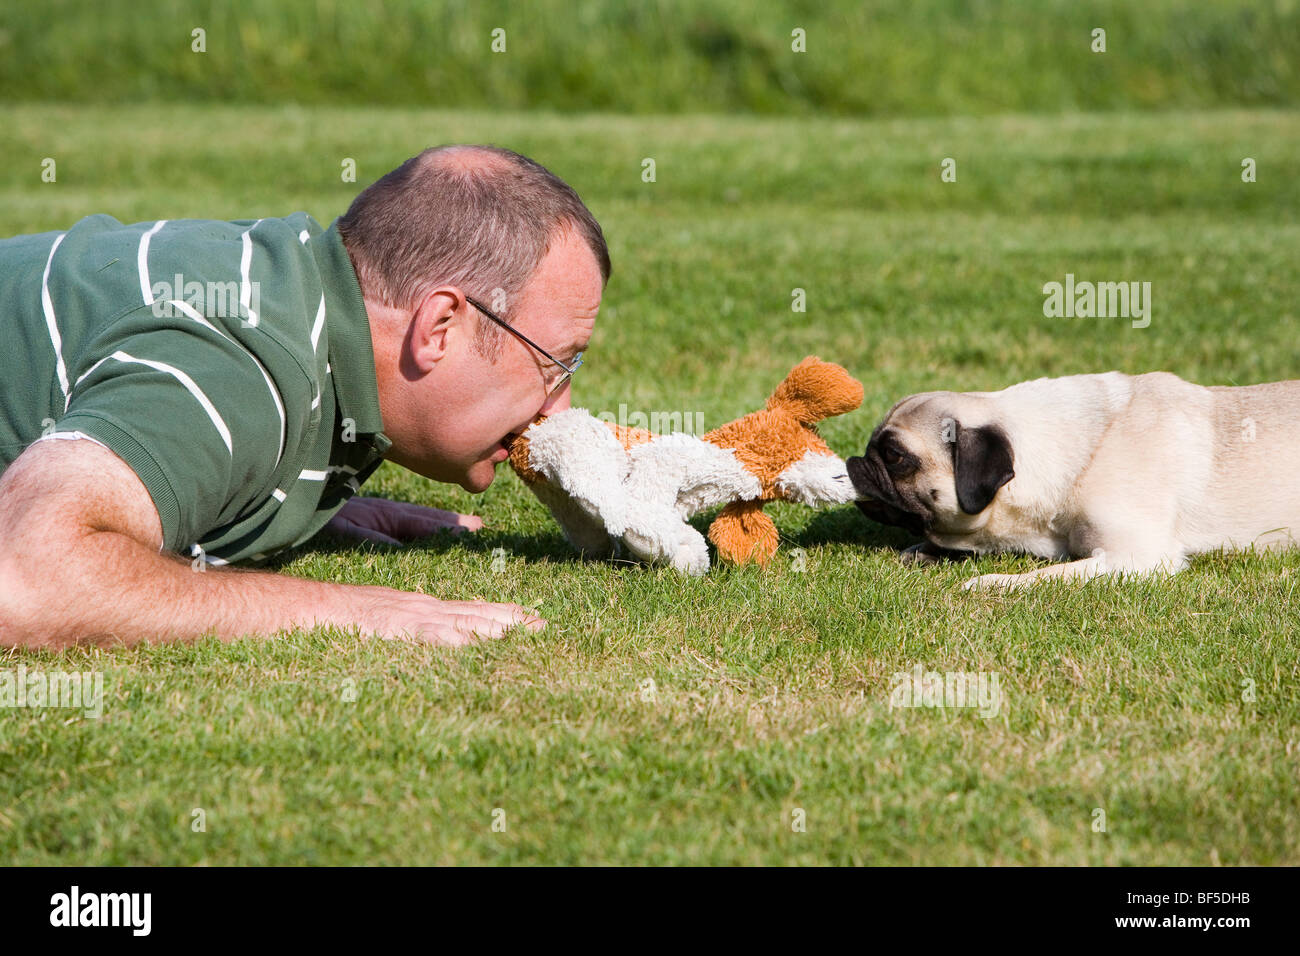 A young male pug and his keeper playing happily in a meadow with a plush toy - Stock Image